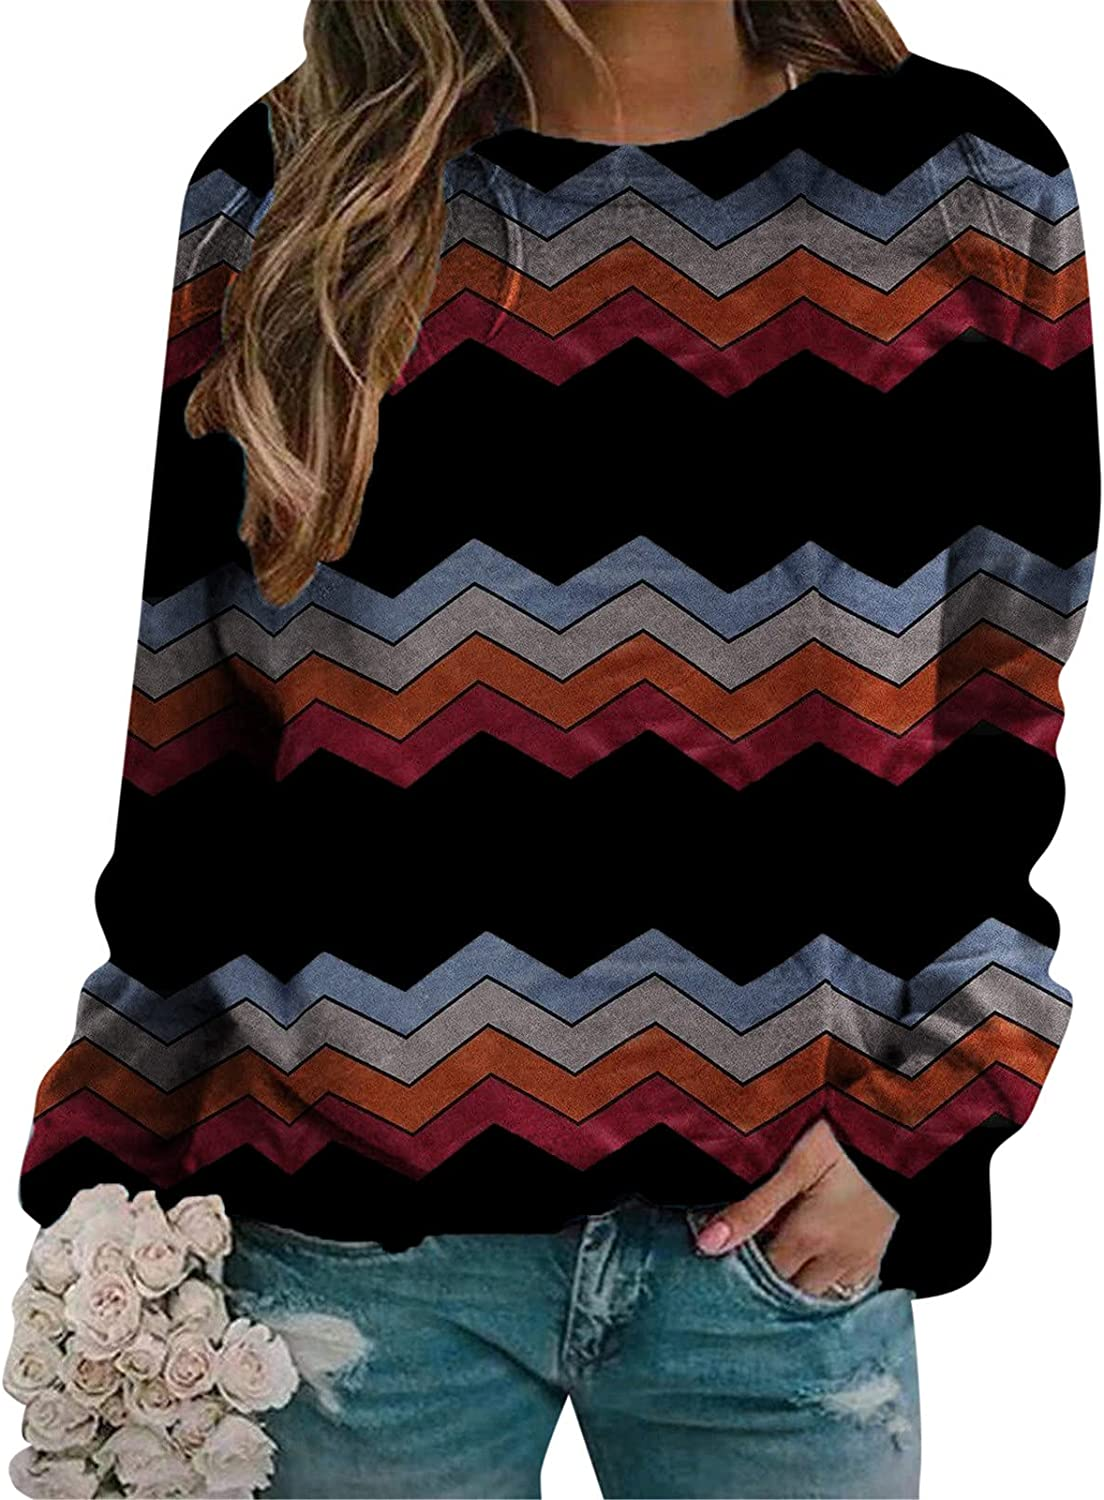 UOCUFY Long Sleeve Shirts for Womens, Womens Sweatshirt Casual Crewneck Long Sleeve Blouse Gradient Color Block Tops